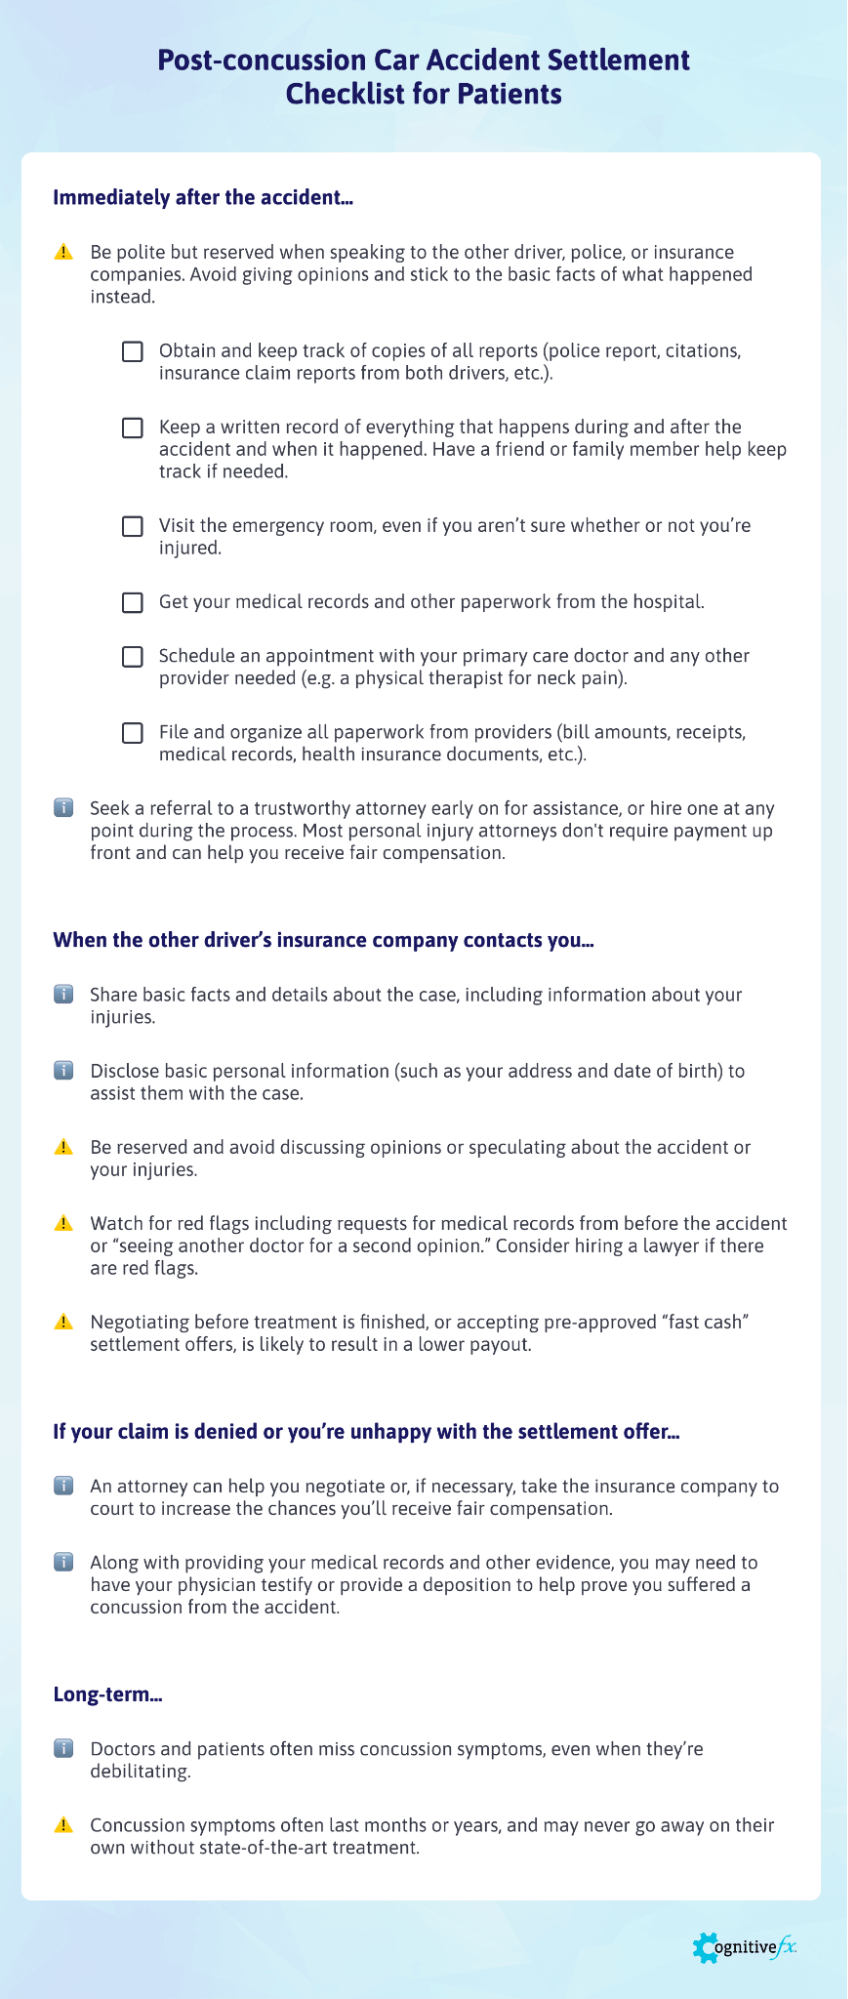 Use this checklist and read our post on how to navigate a settlement for PCS after an accident.